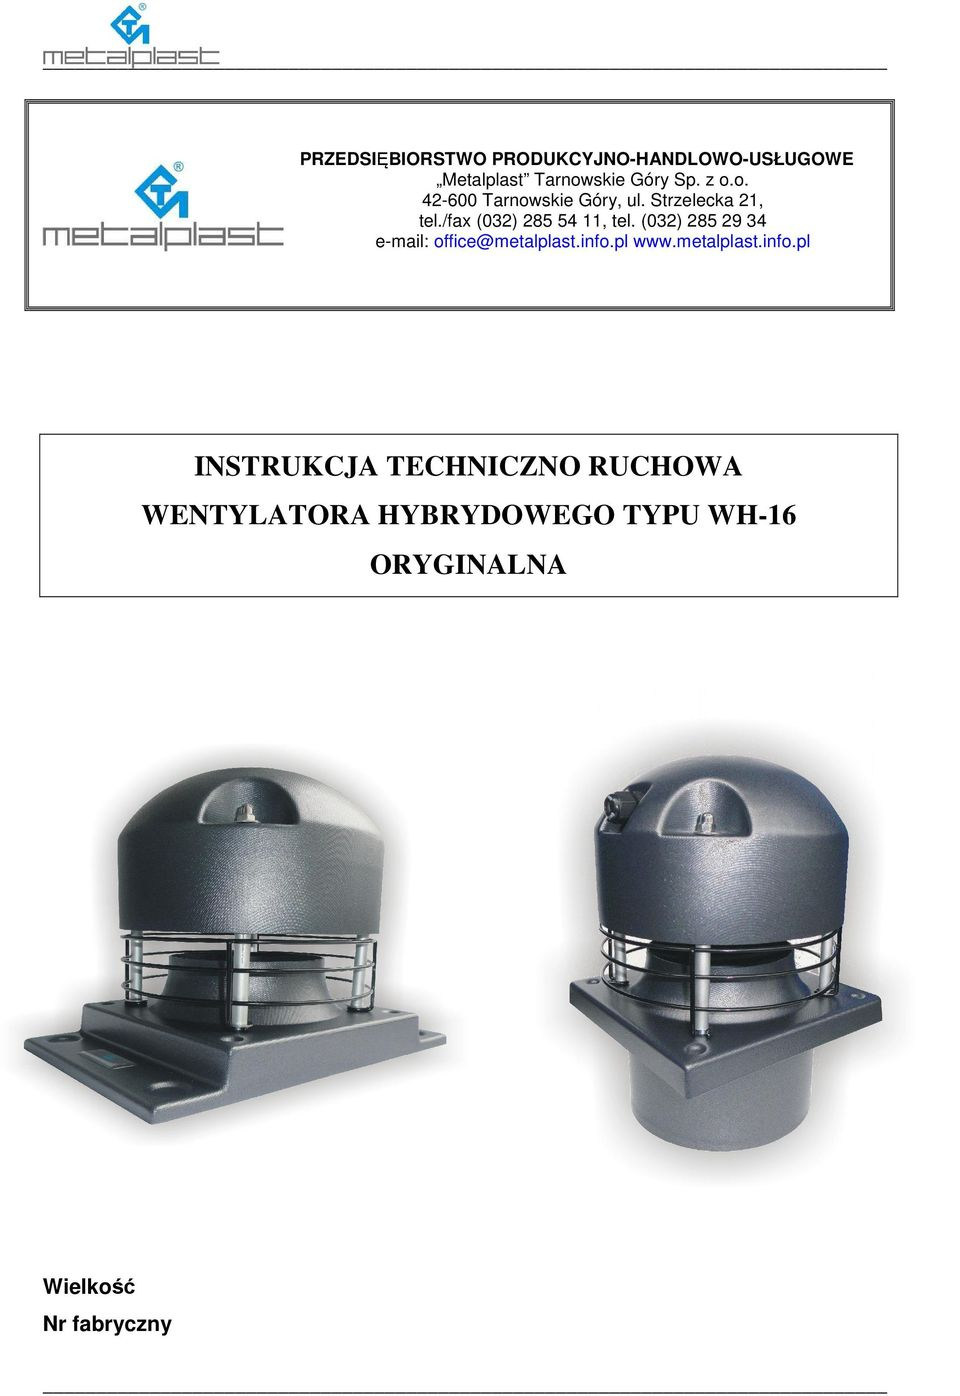 (032) 285 29 34 e-mail: office@metalplast.info.